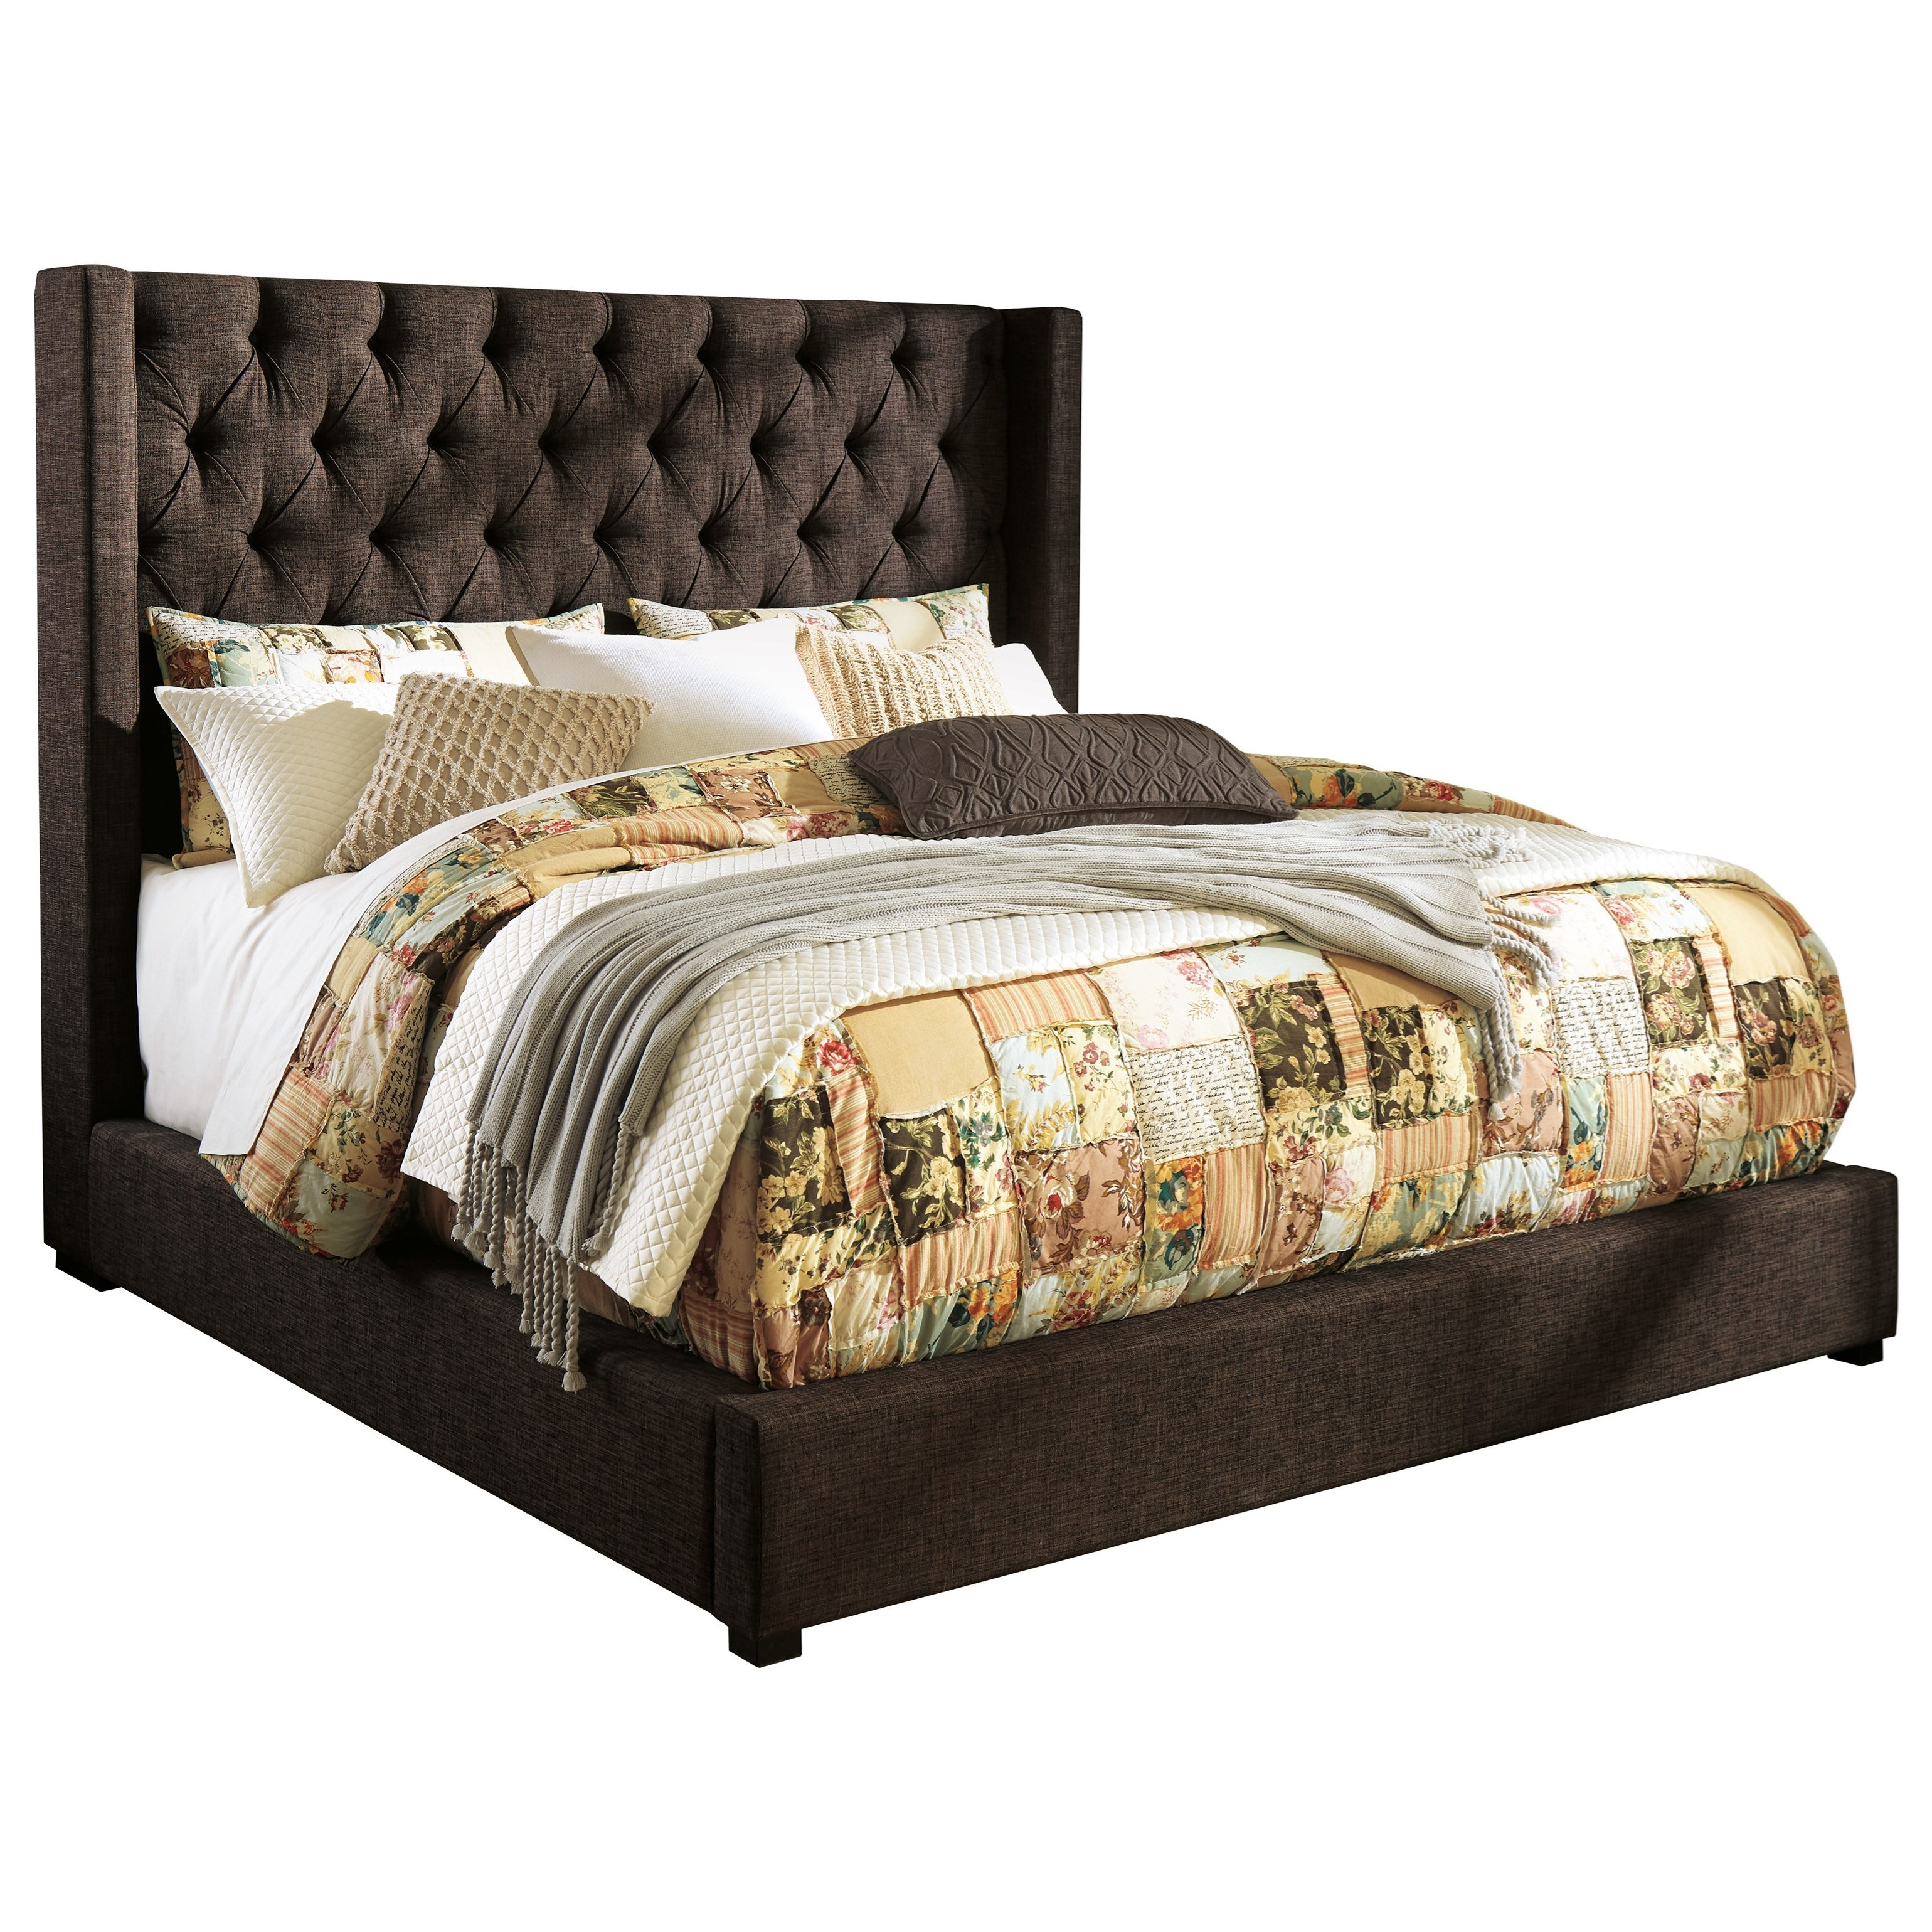 King Upholstered Wing Bed